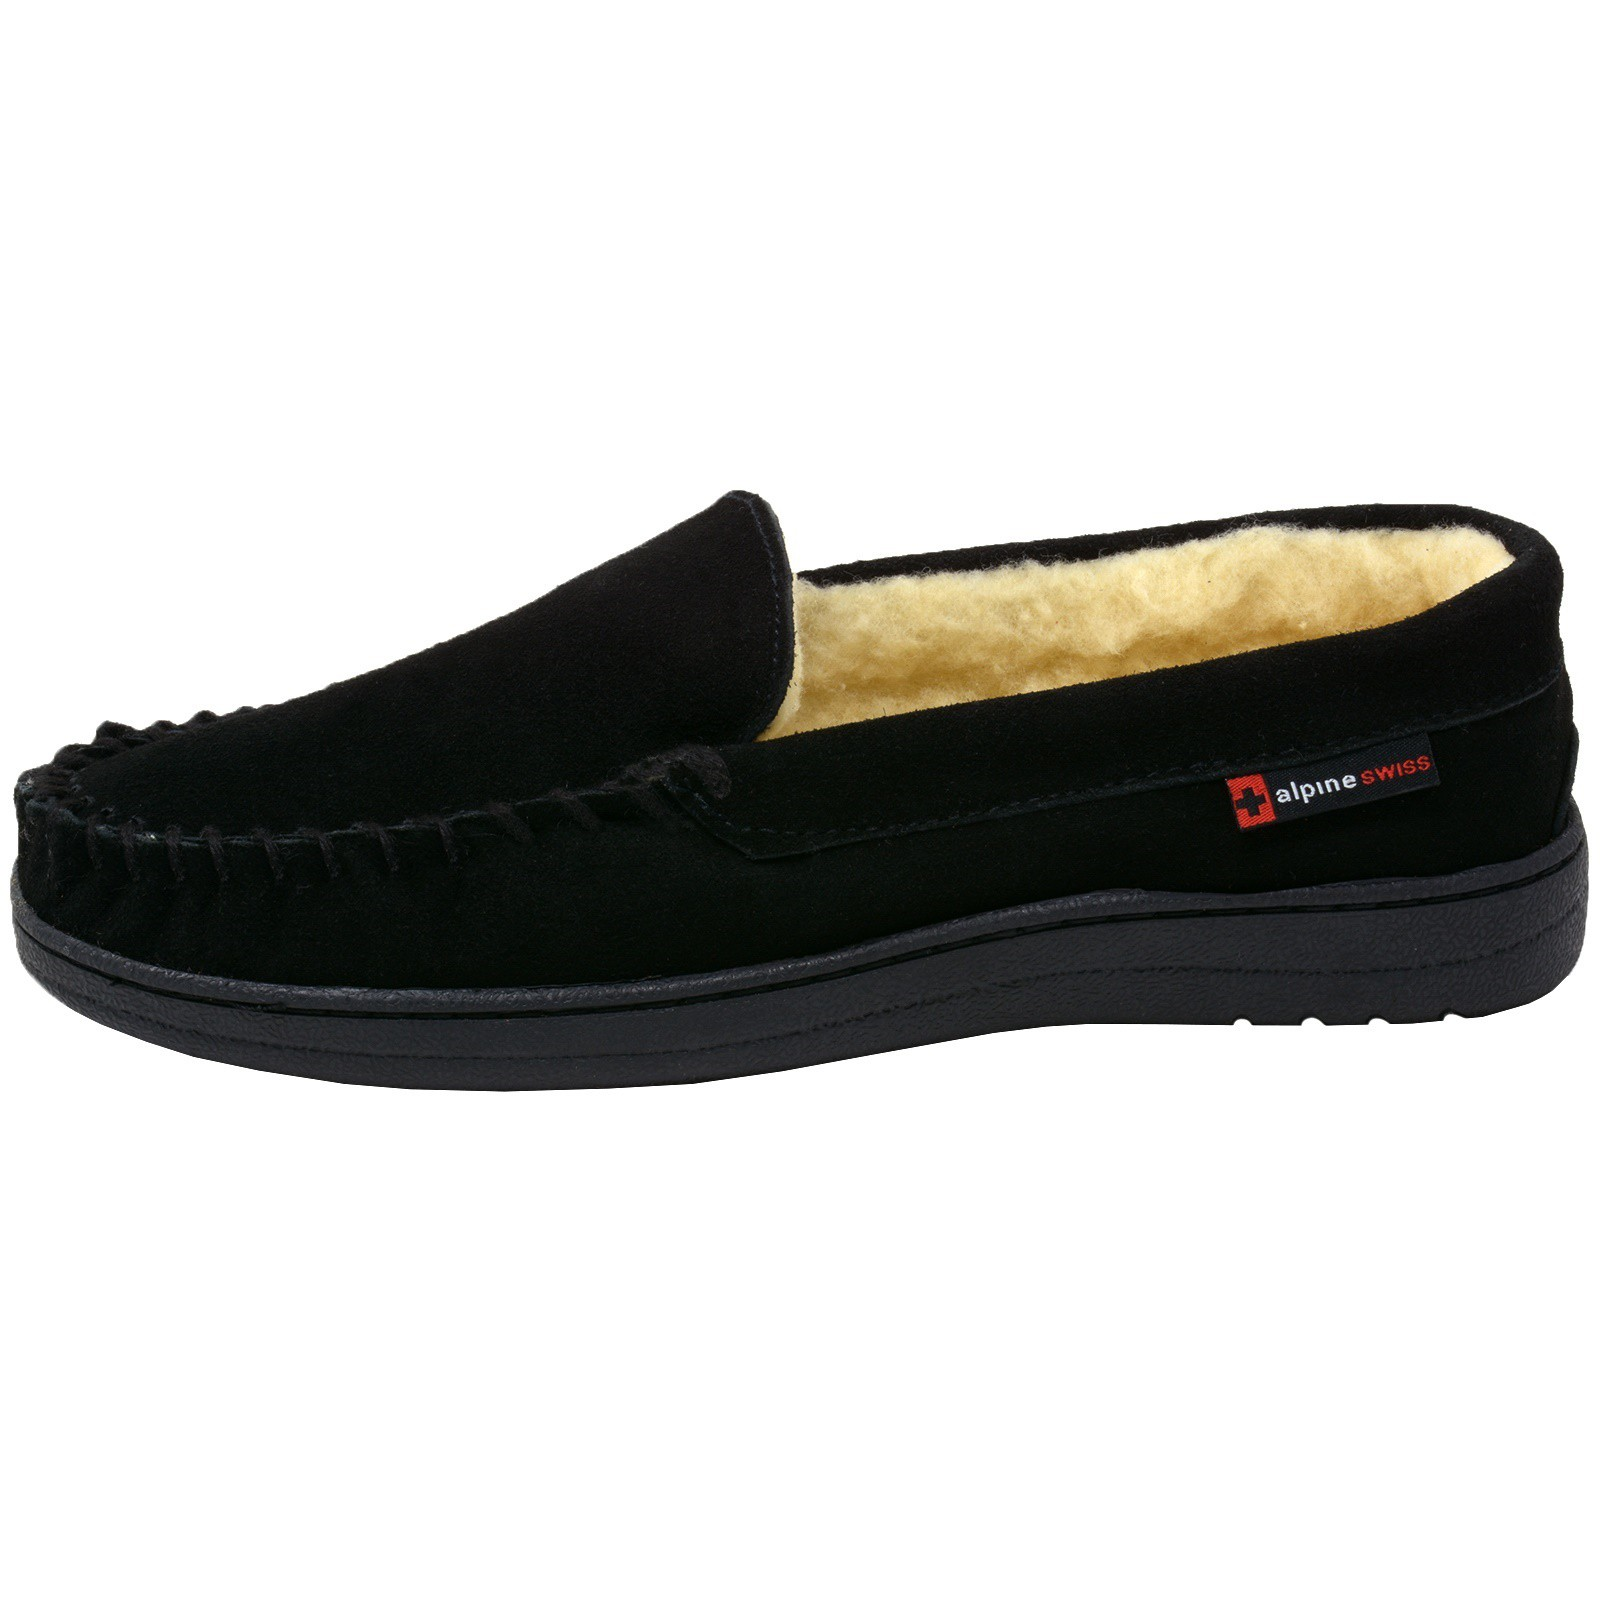 Alpine-Swiss-Yukon-Mens-Suede-Shearling-Moccasin-Slippers-Moc-Toe-Slip-On-Shoes thumbnail 13